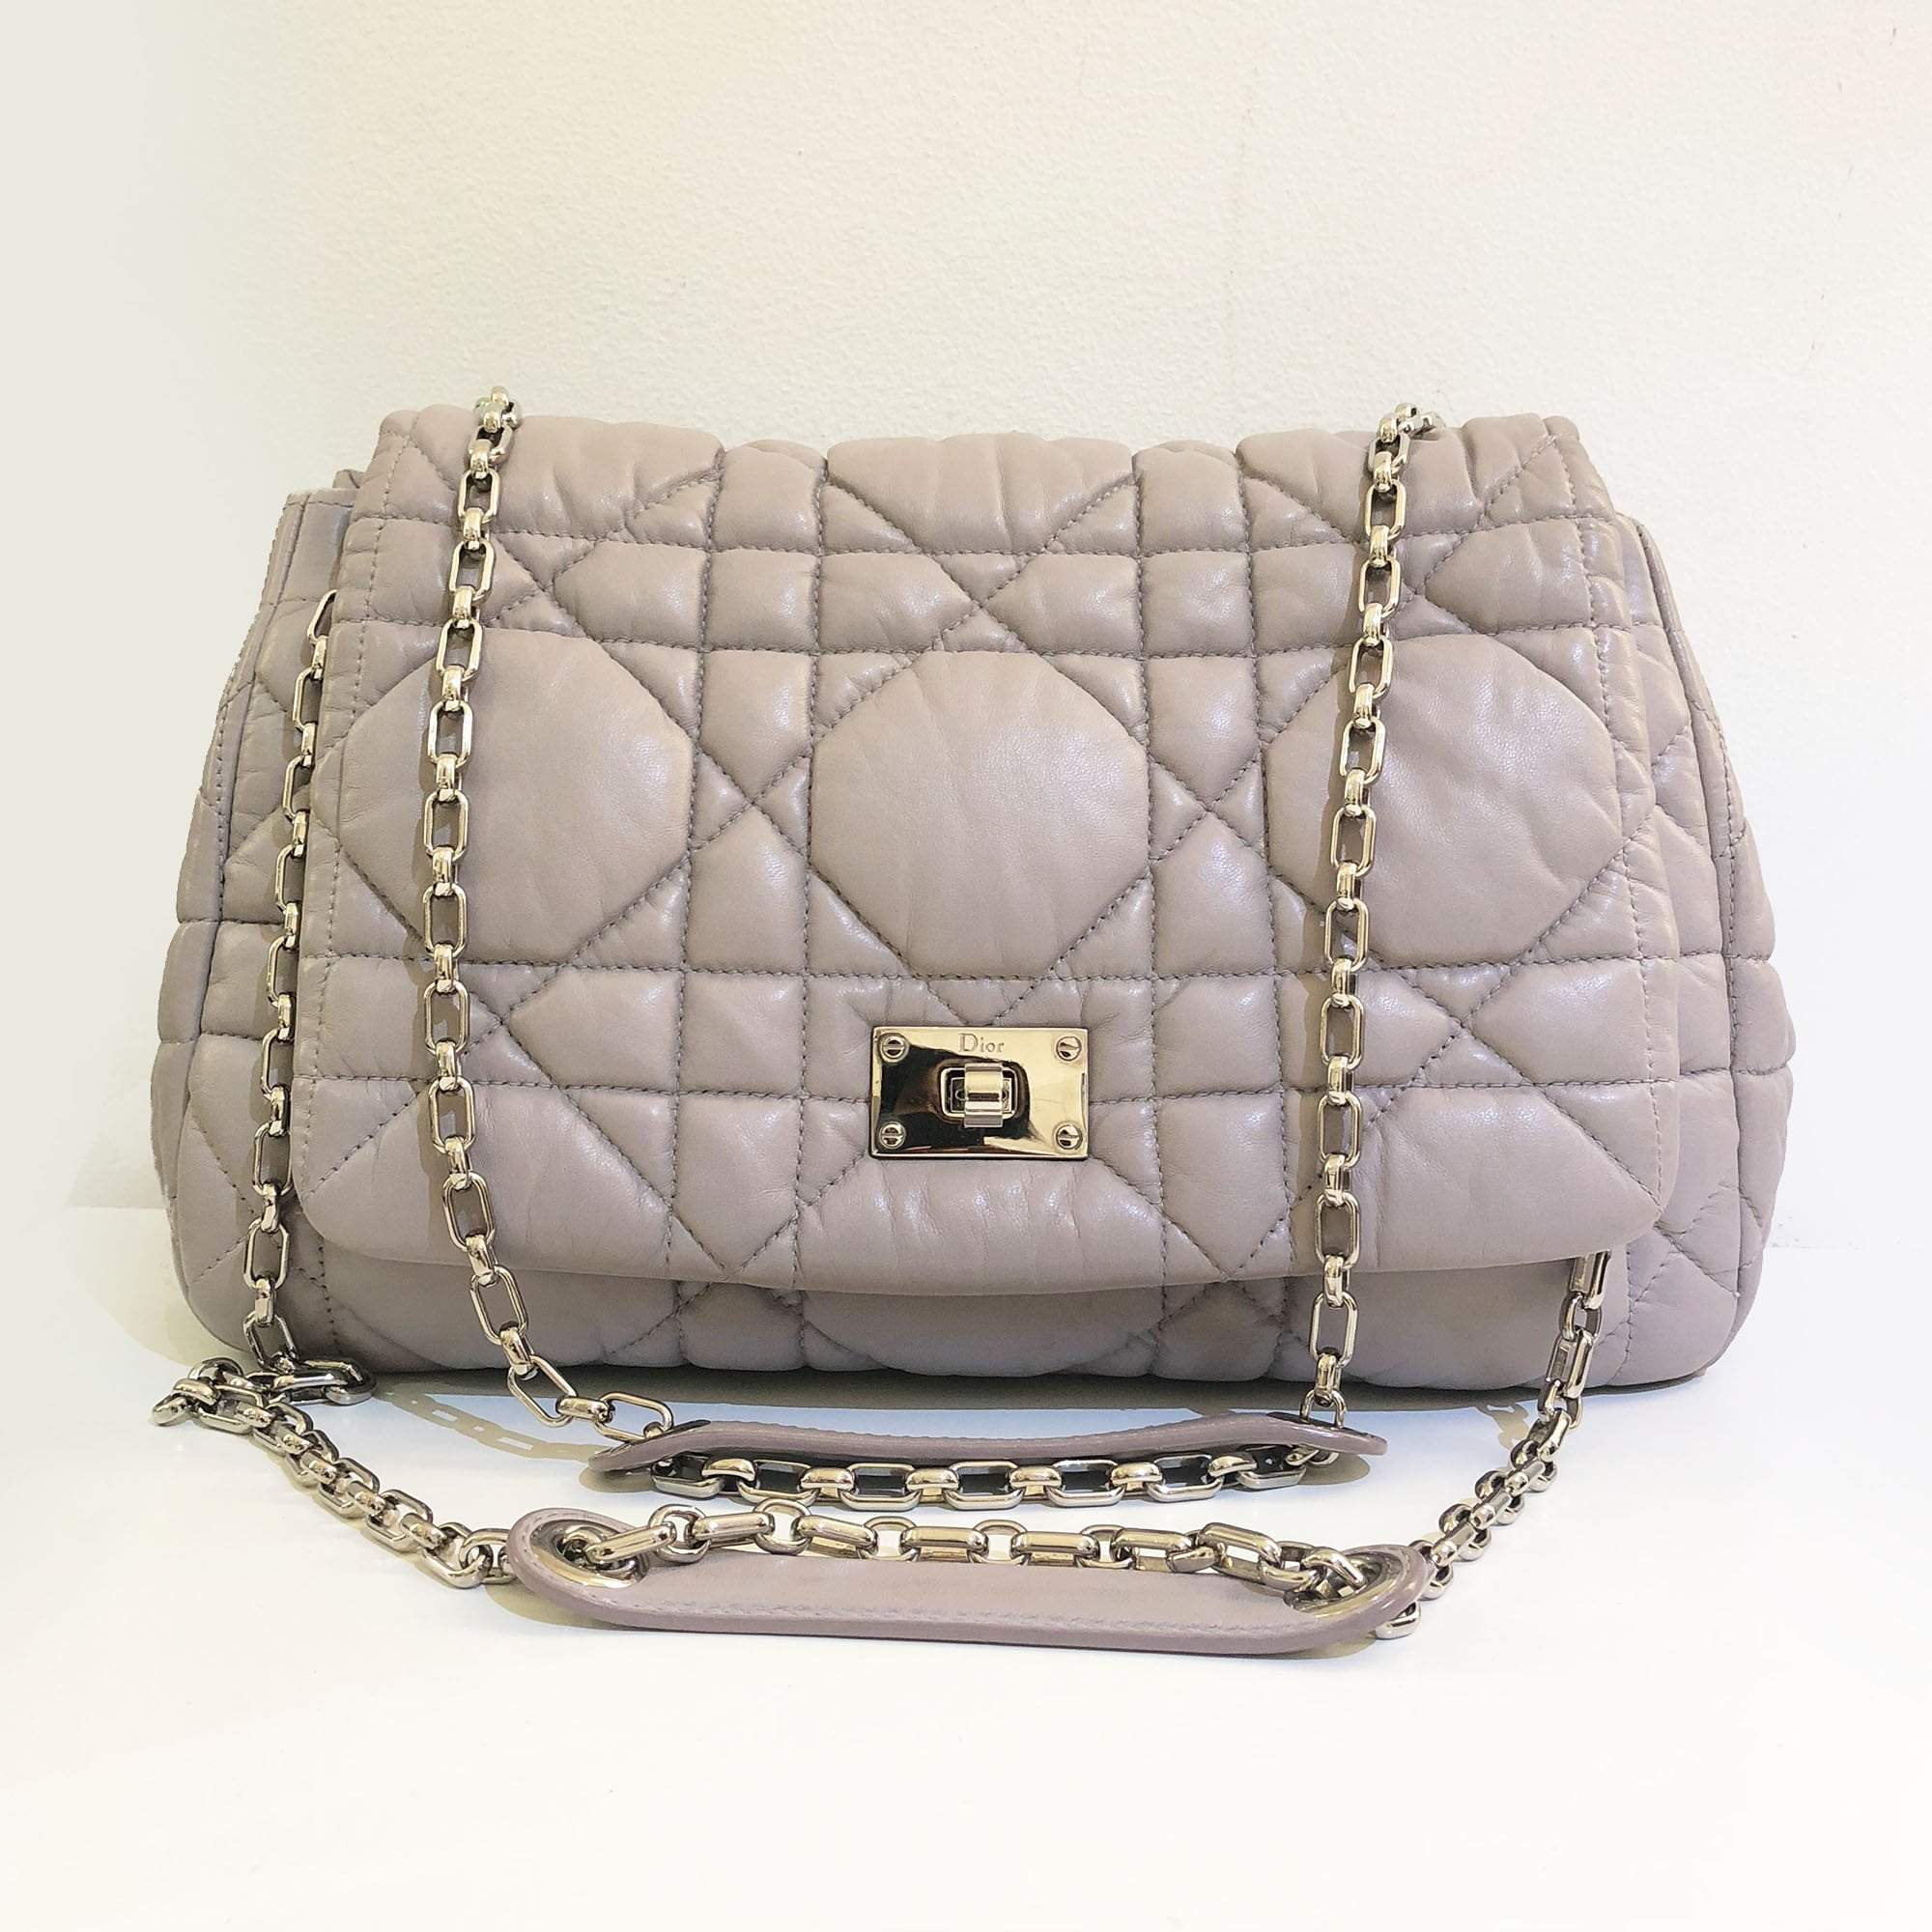 3bc2b8869d7 Christian Dior Cannage Quilted Lambskin Chain Shoulder Bag – Garderobe